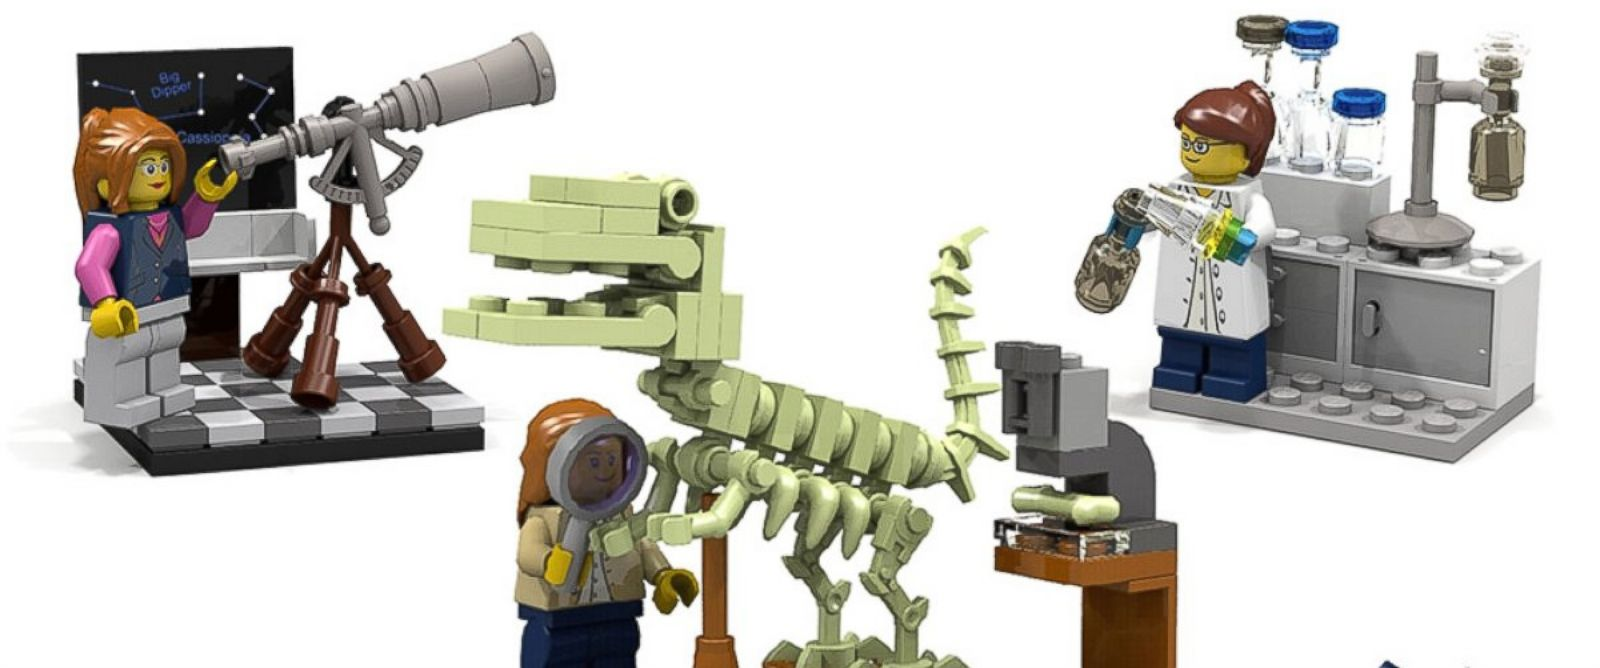 PHOTO: Lego has started to develop a new series of figurines featuring female scientists.